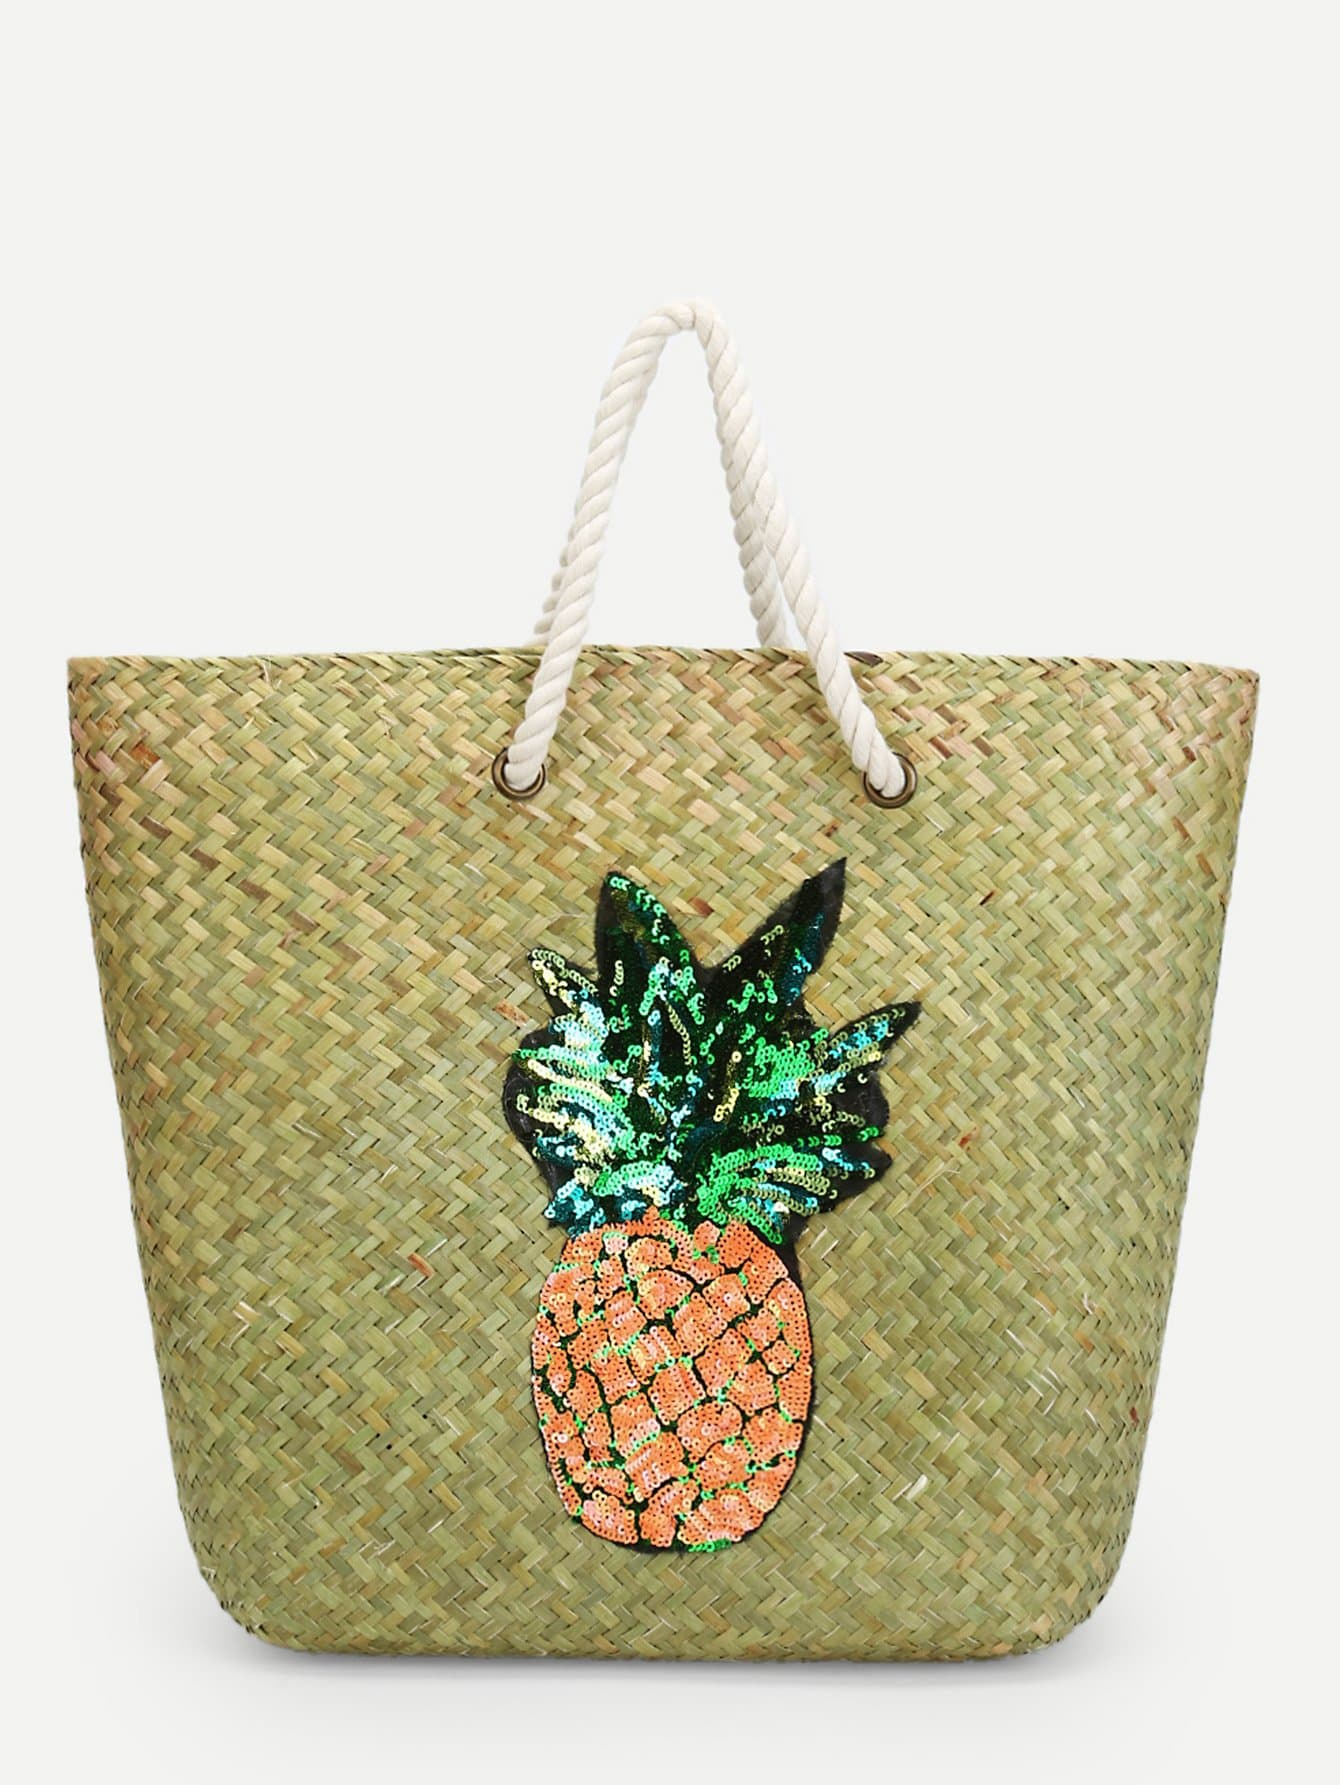 Pineapple Pattern Straw Tote Bag palm tree pattern straw chain bag